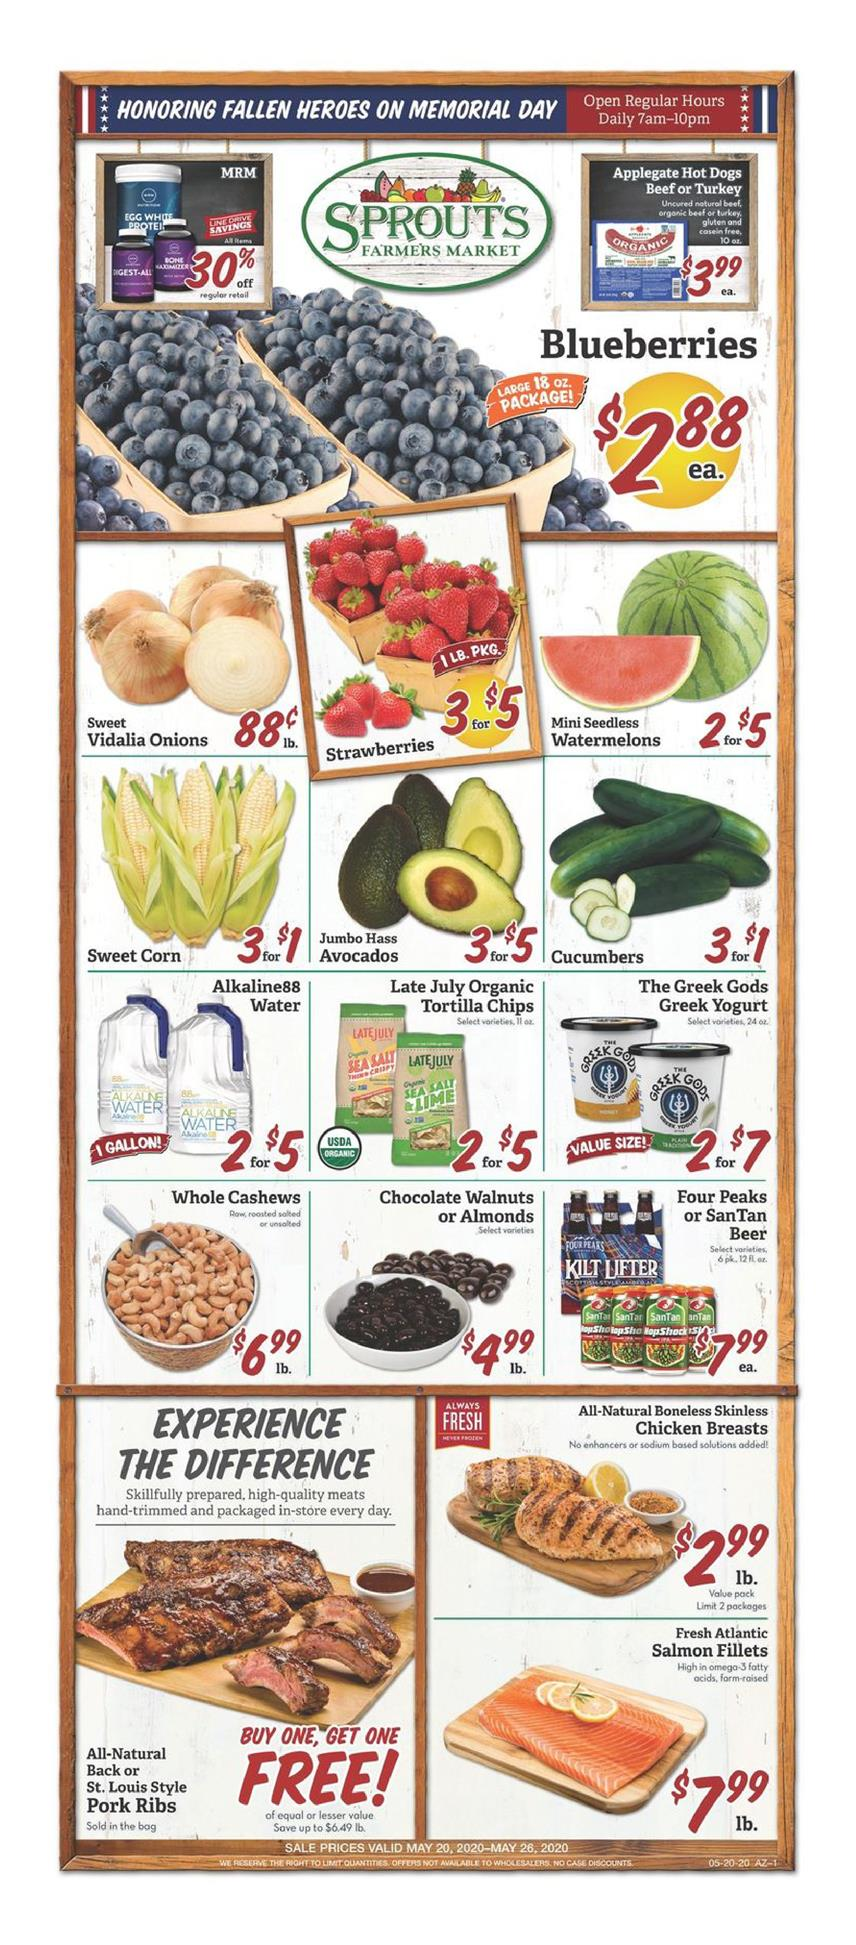 Sprouts May Weekly Grocery Ad valid from May 20 – 26, 2020